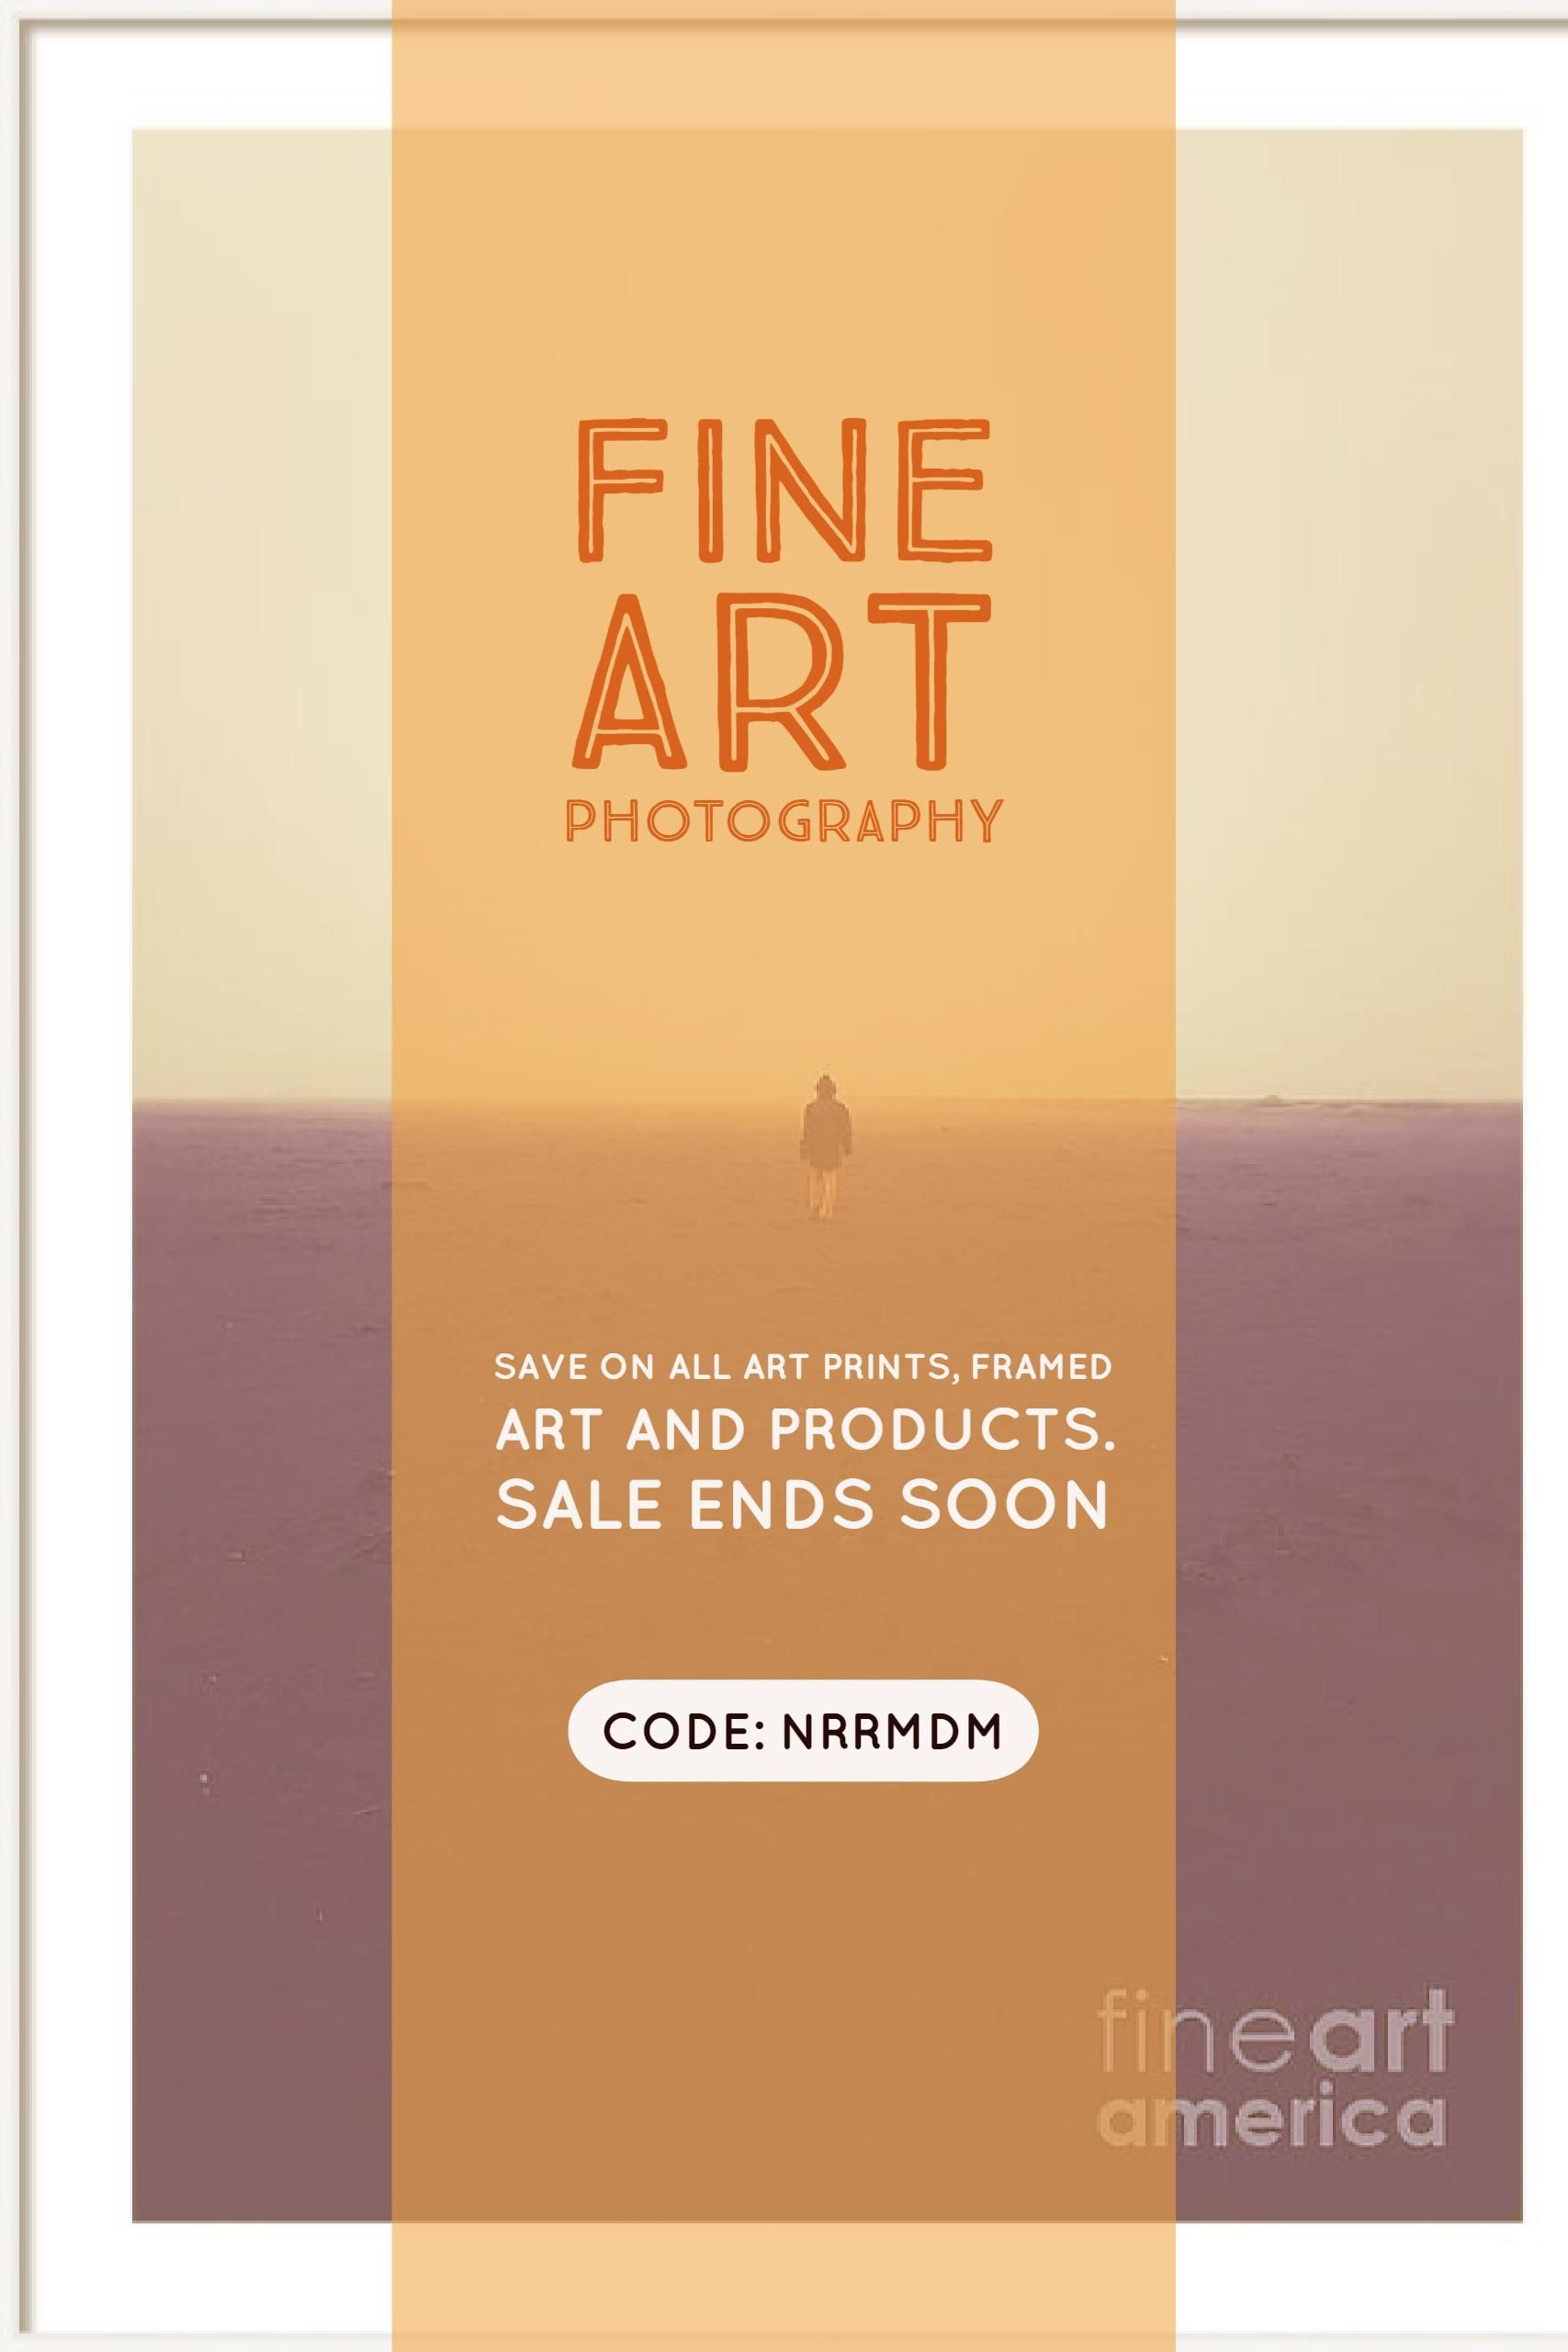 Fine art photography coupon code - decor with 5,000 images and ...